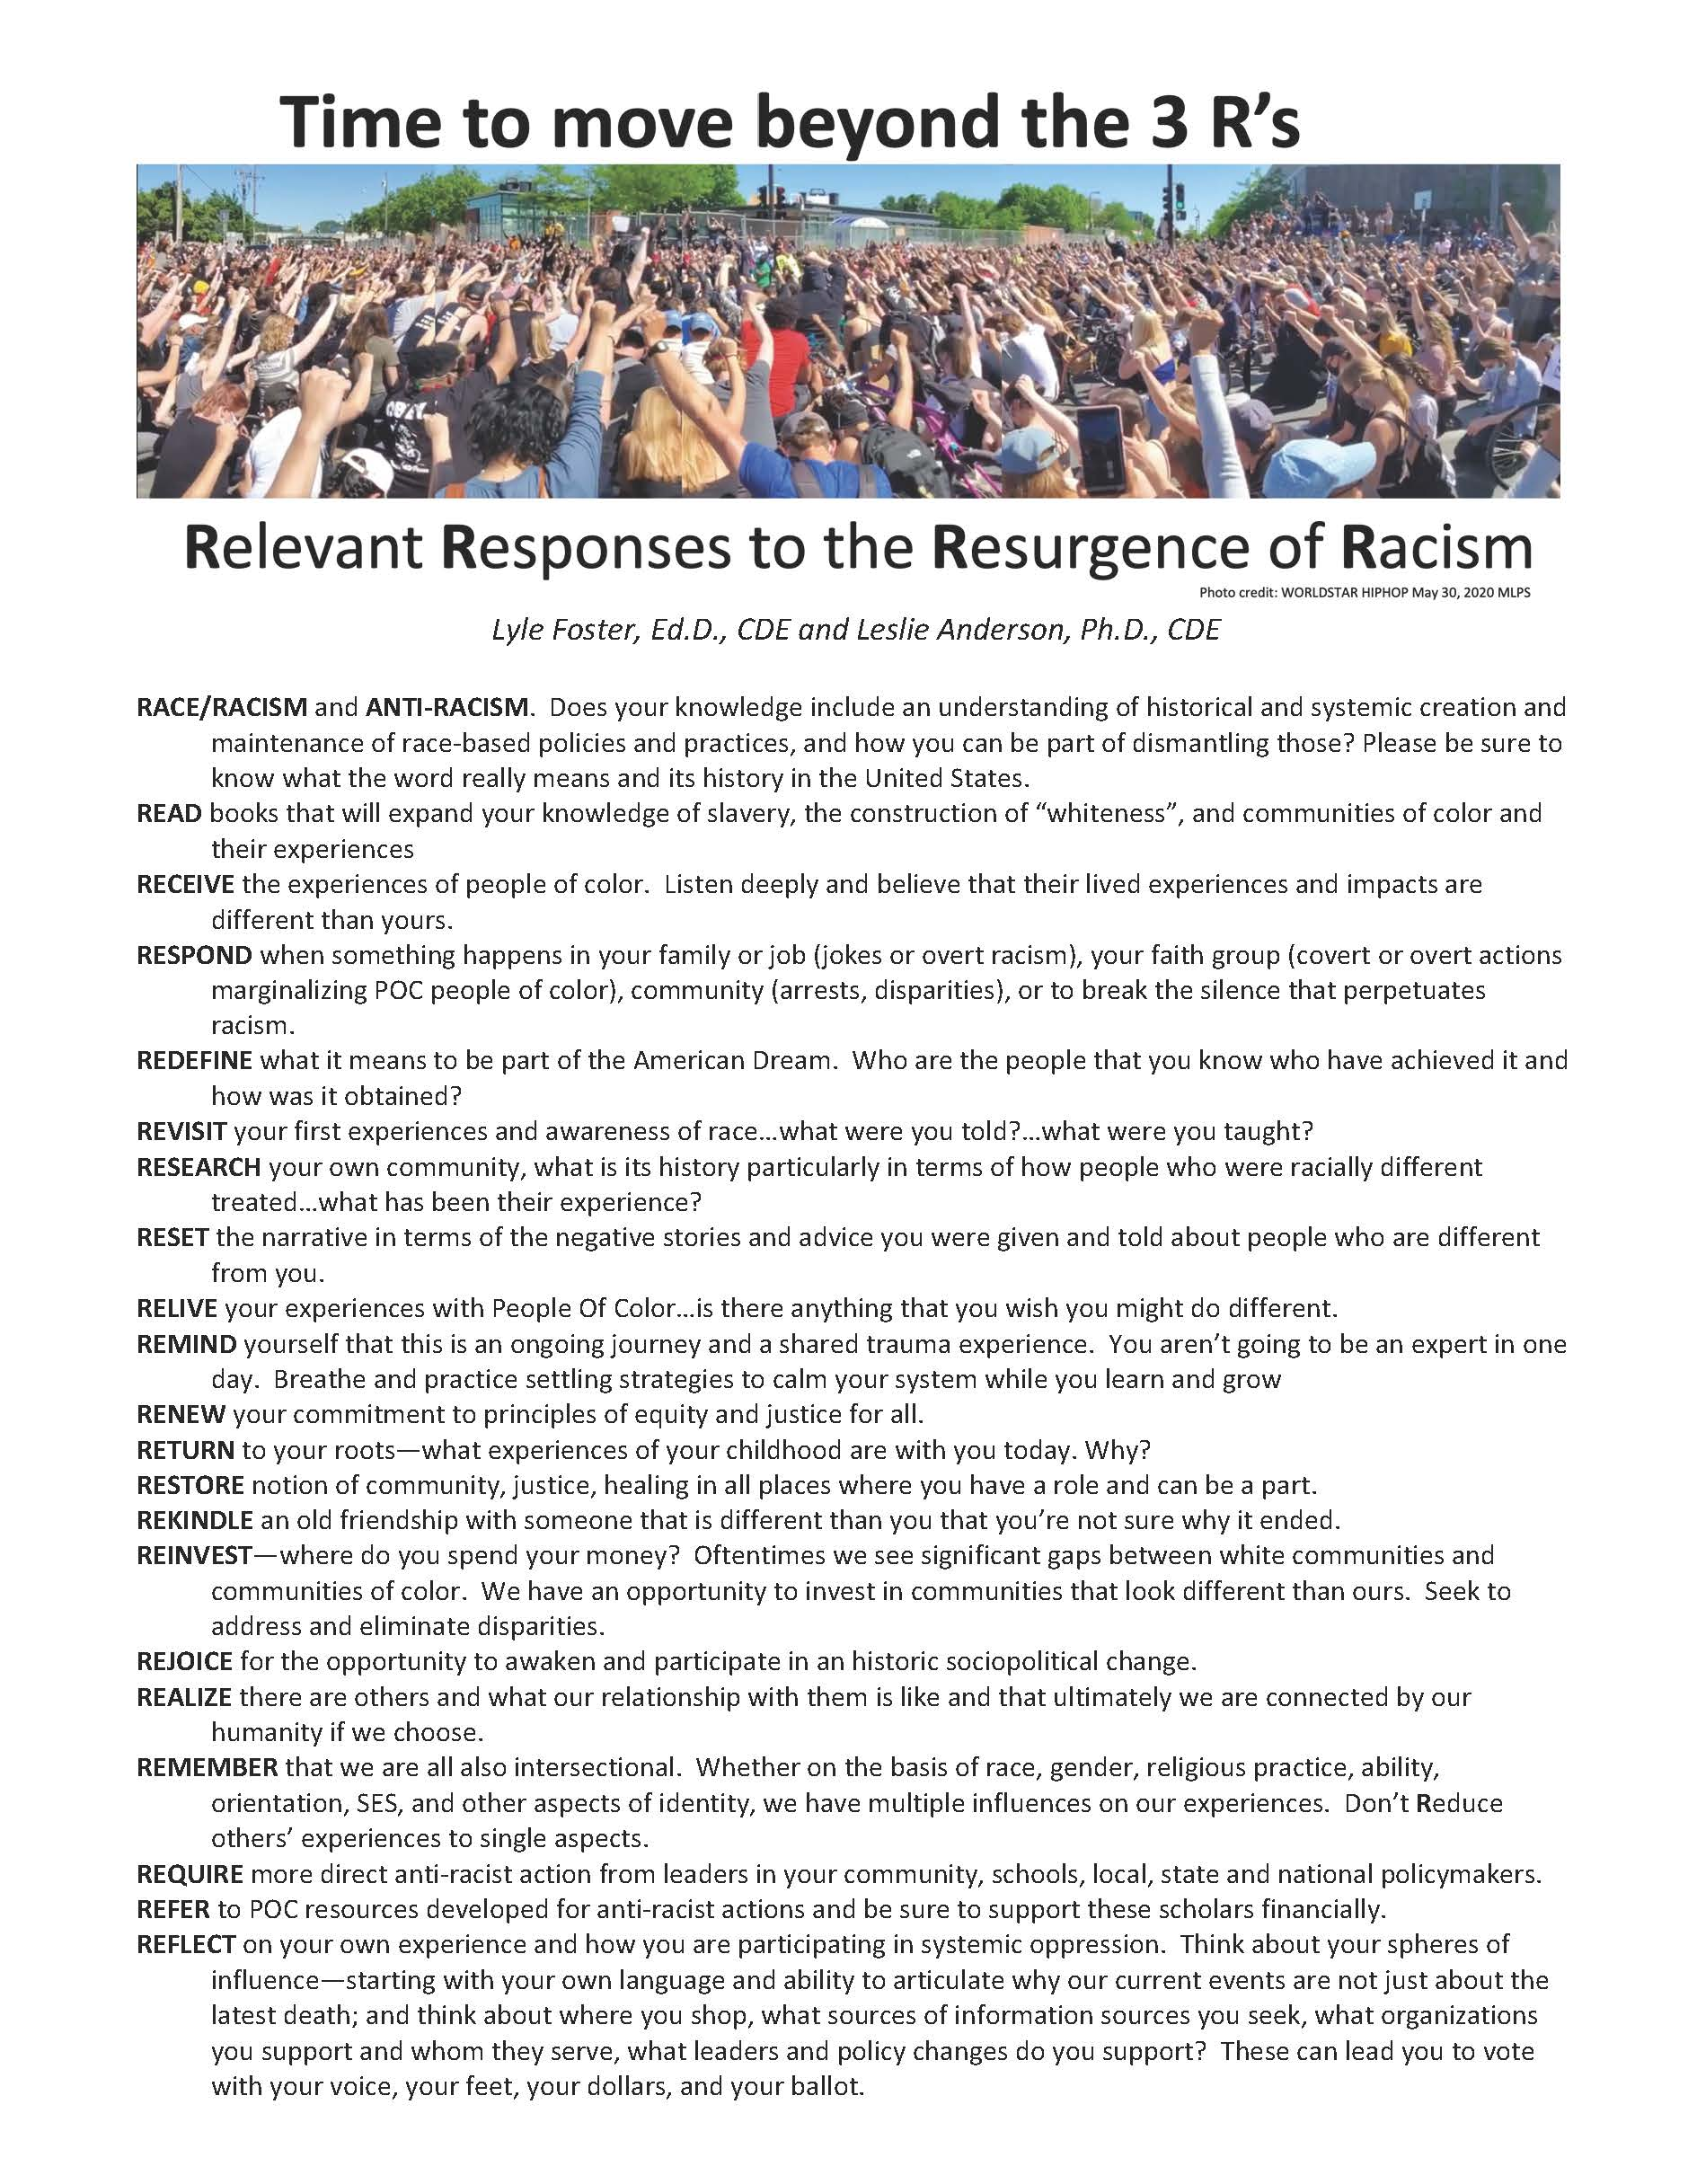 Image of Relevant responses to the resurgence of racism document. PDF link available below image.